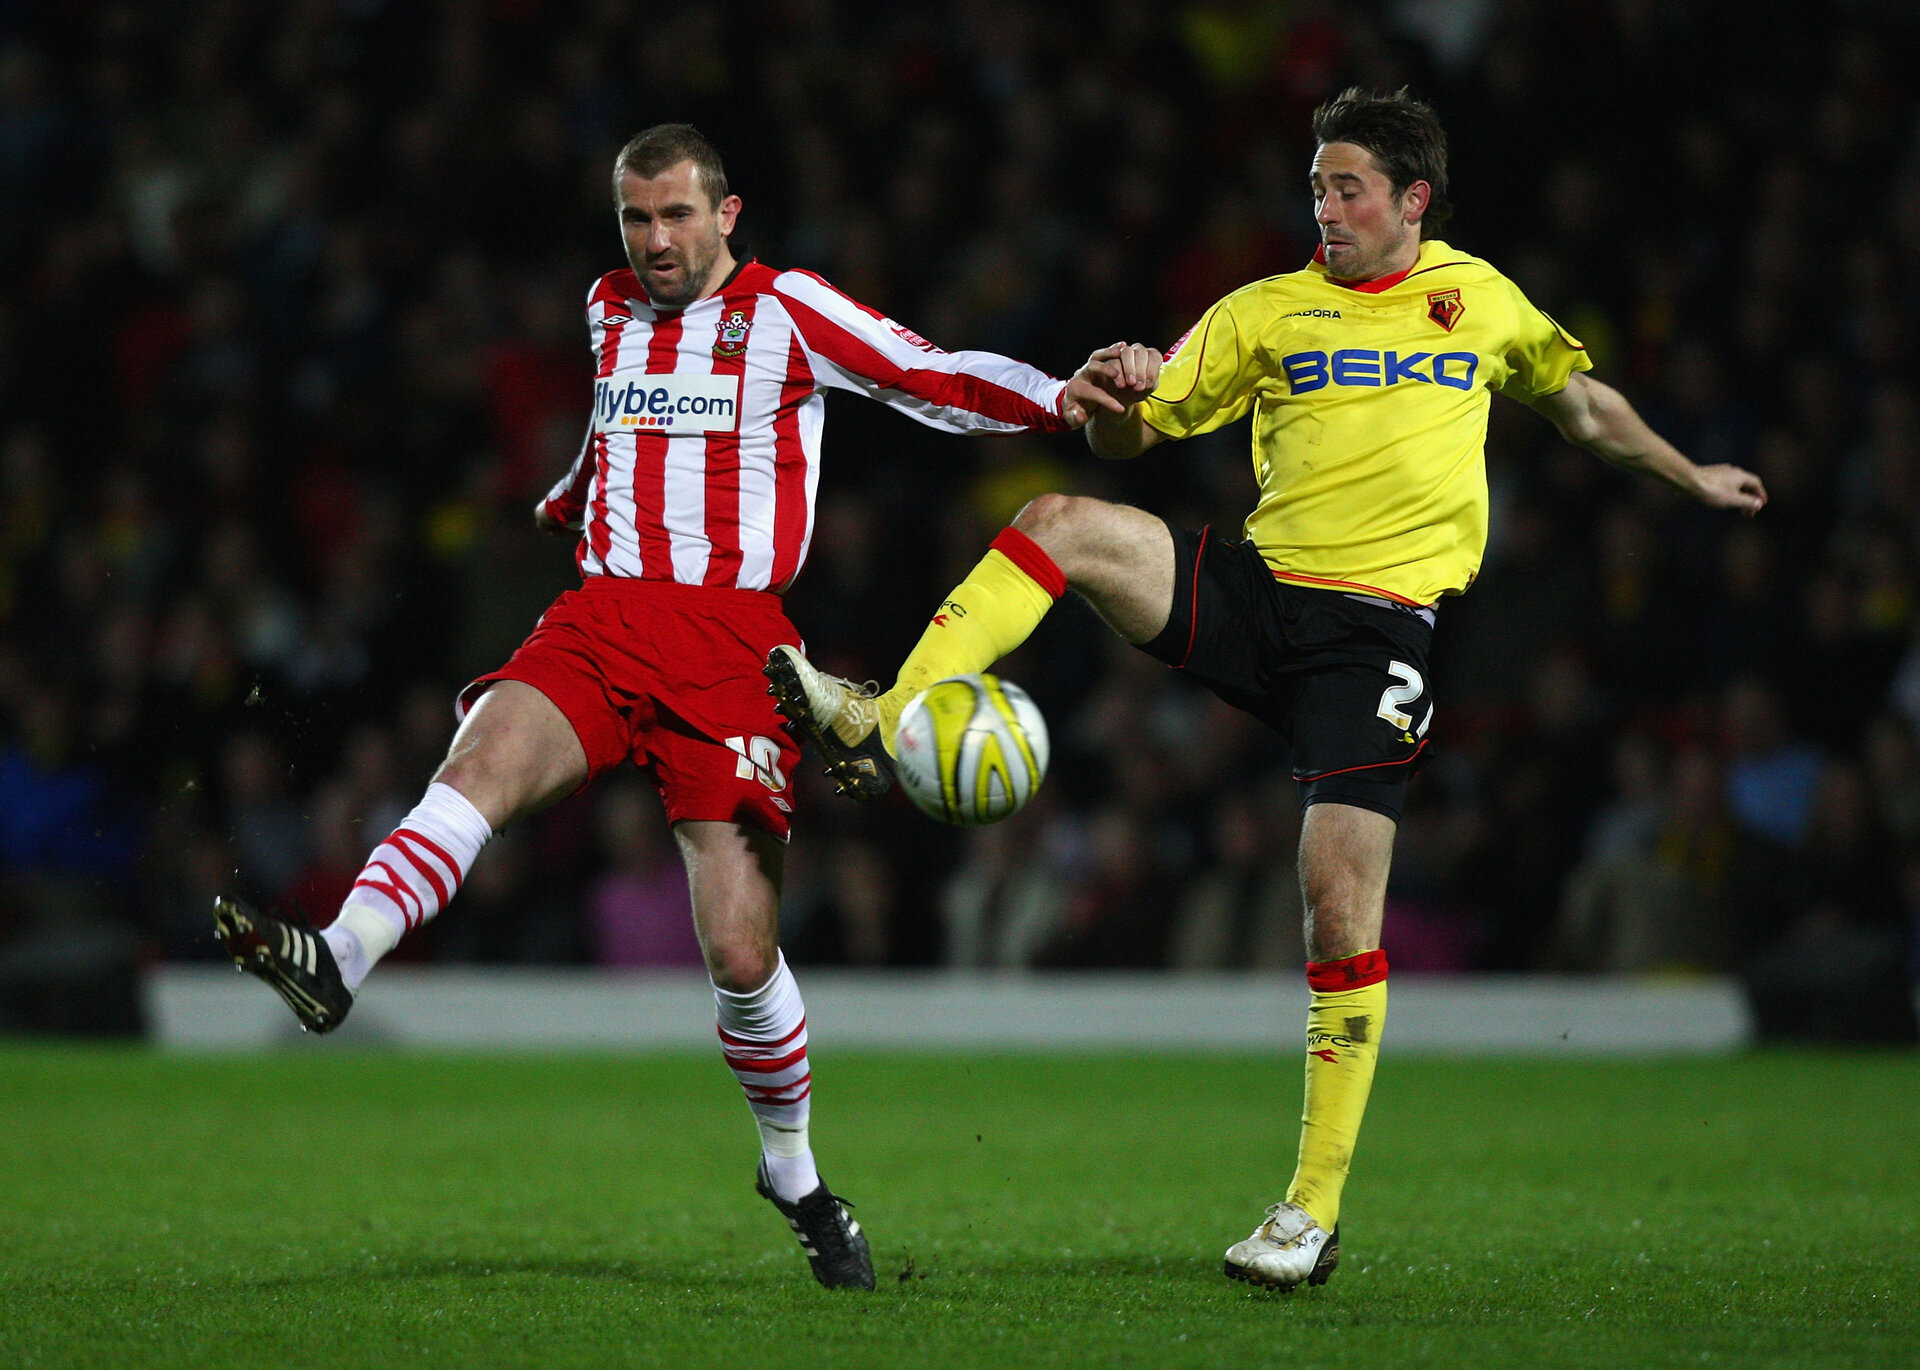 WATFORD, ENGLAND - APRIL 07:  Tommy Smith (R) of Watford competes for the ball against Paul Wotton (L) of Southampton during the Coca Cola Championship match between Watford and Southampton at Vicarage Road on April 7, 2009 in Watford, England.  (Photo by Ryan Pierse/Getty Images)